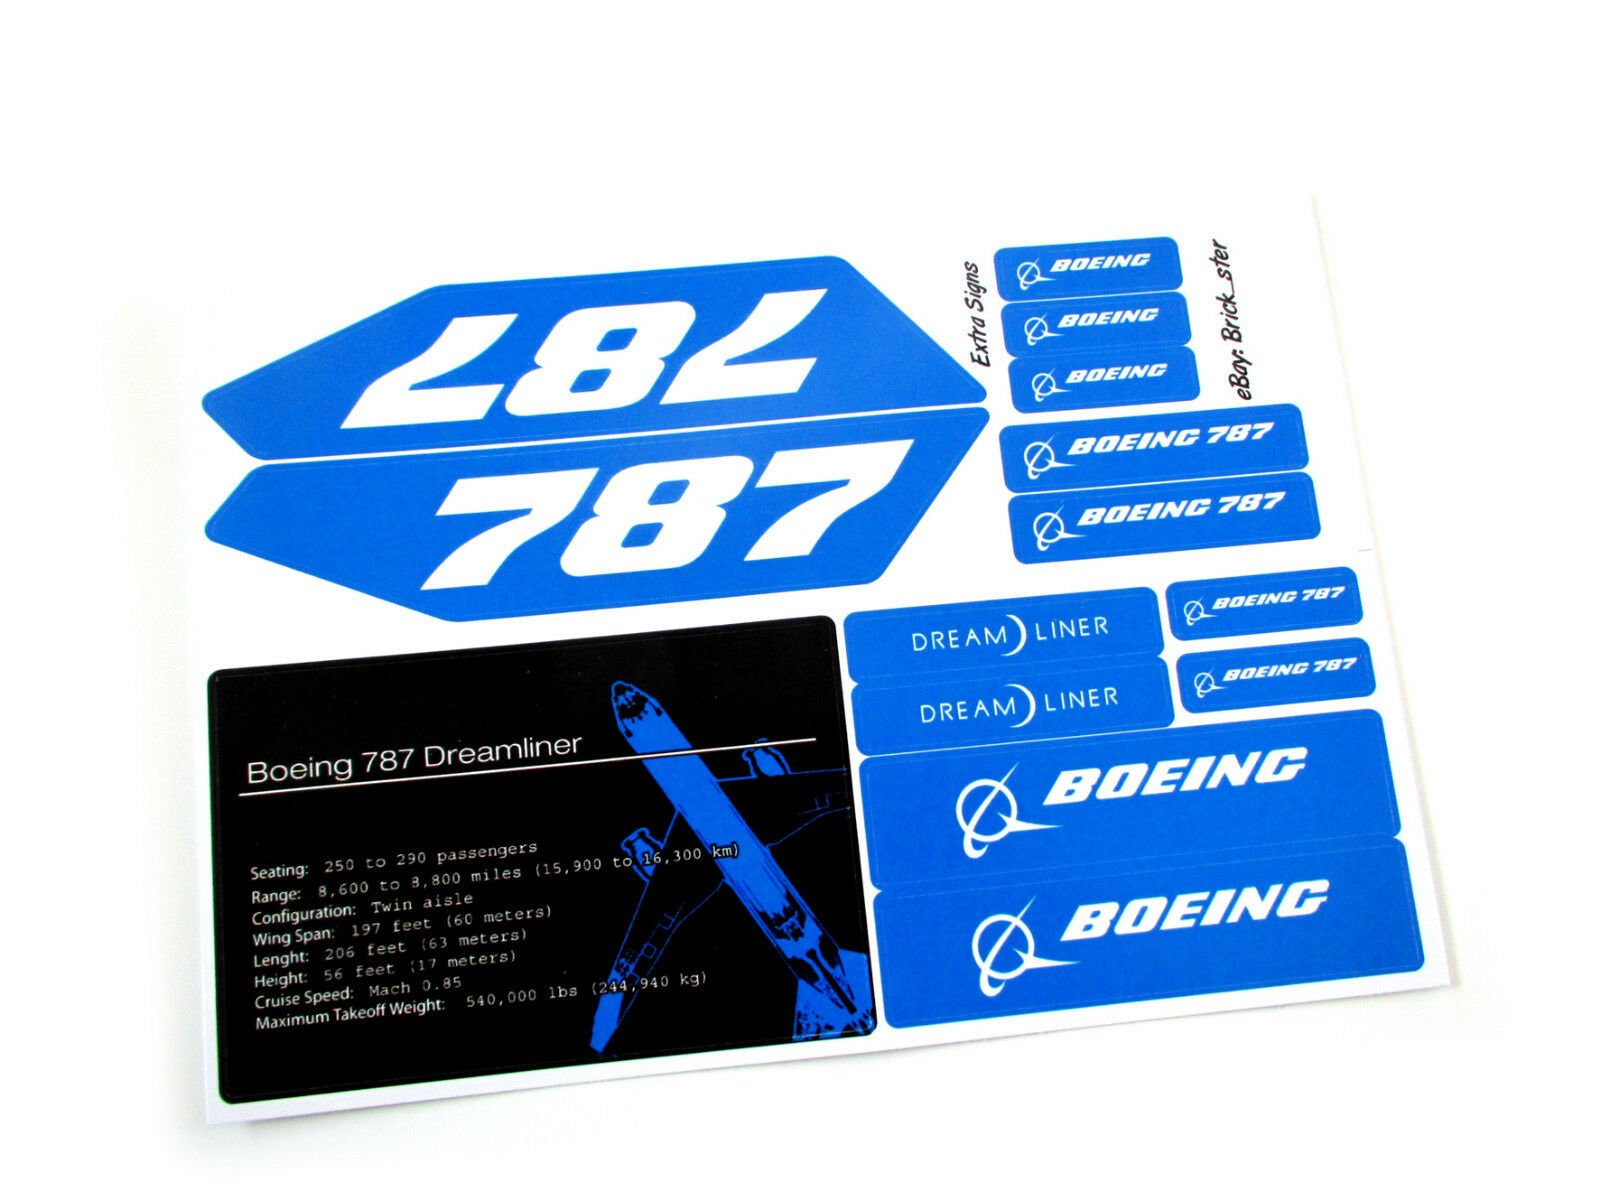 Custom Stickers for Lego 10177 Boeing 787 Dreamliner - Pre-cut